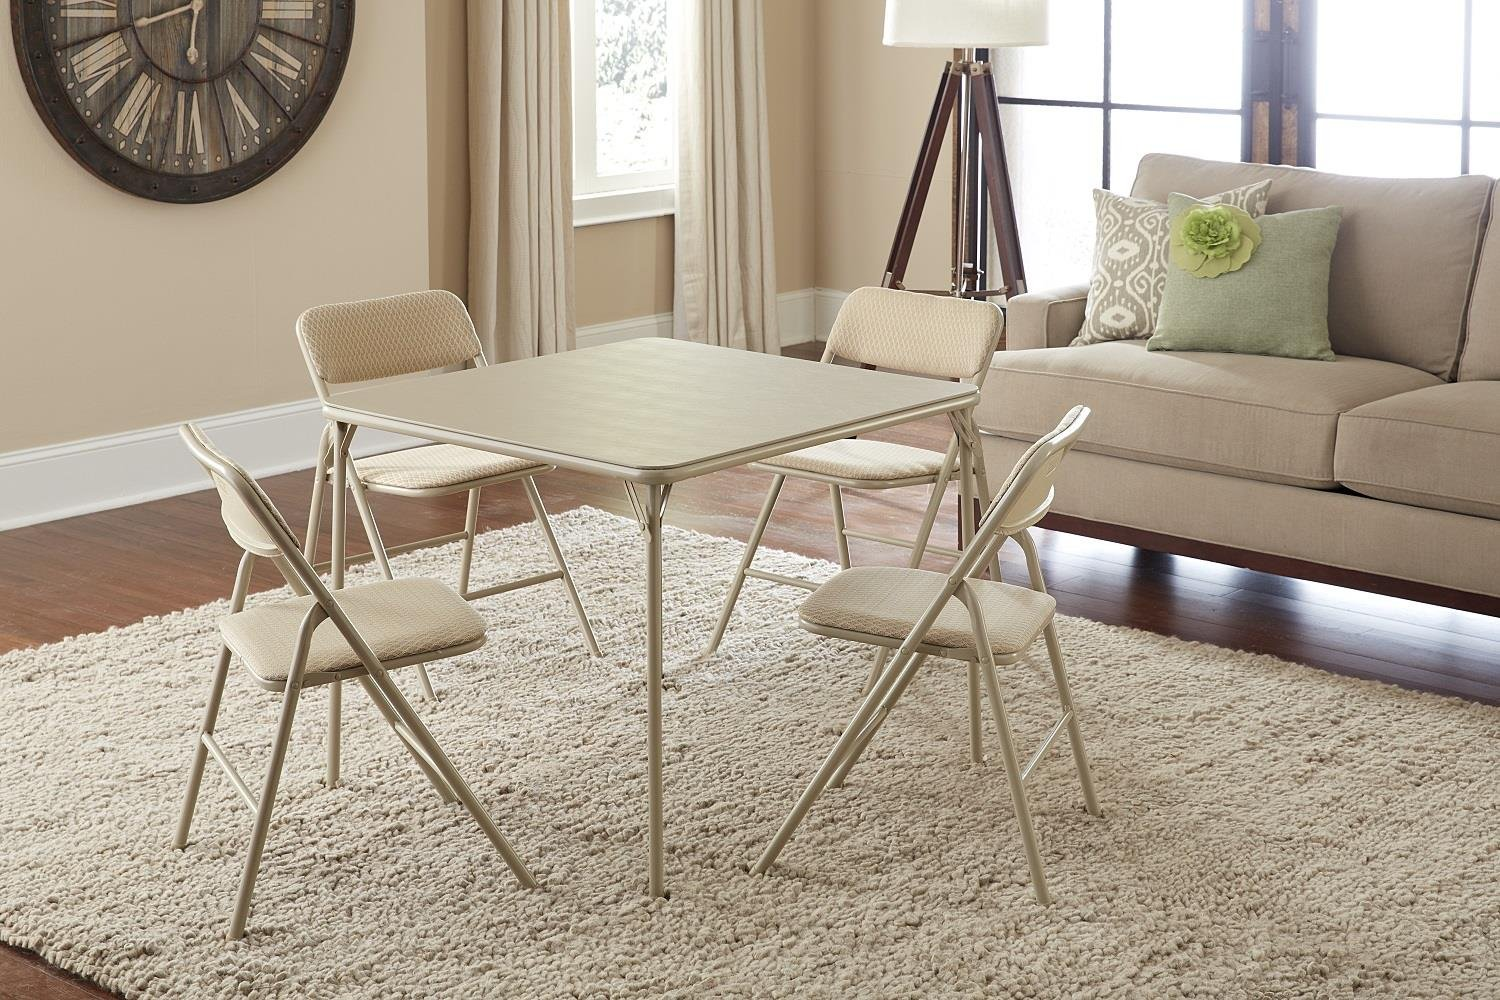 Cosco 14551whd Outdoor Living 5 Piece Folding Table And